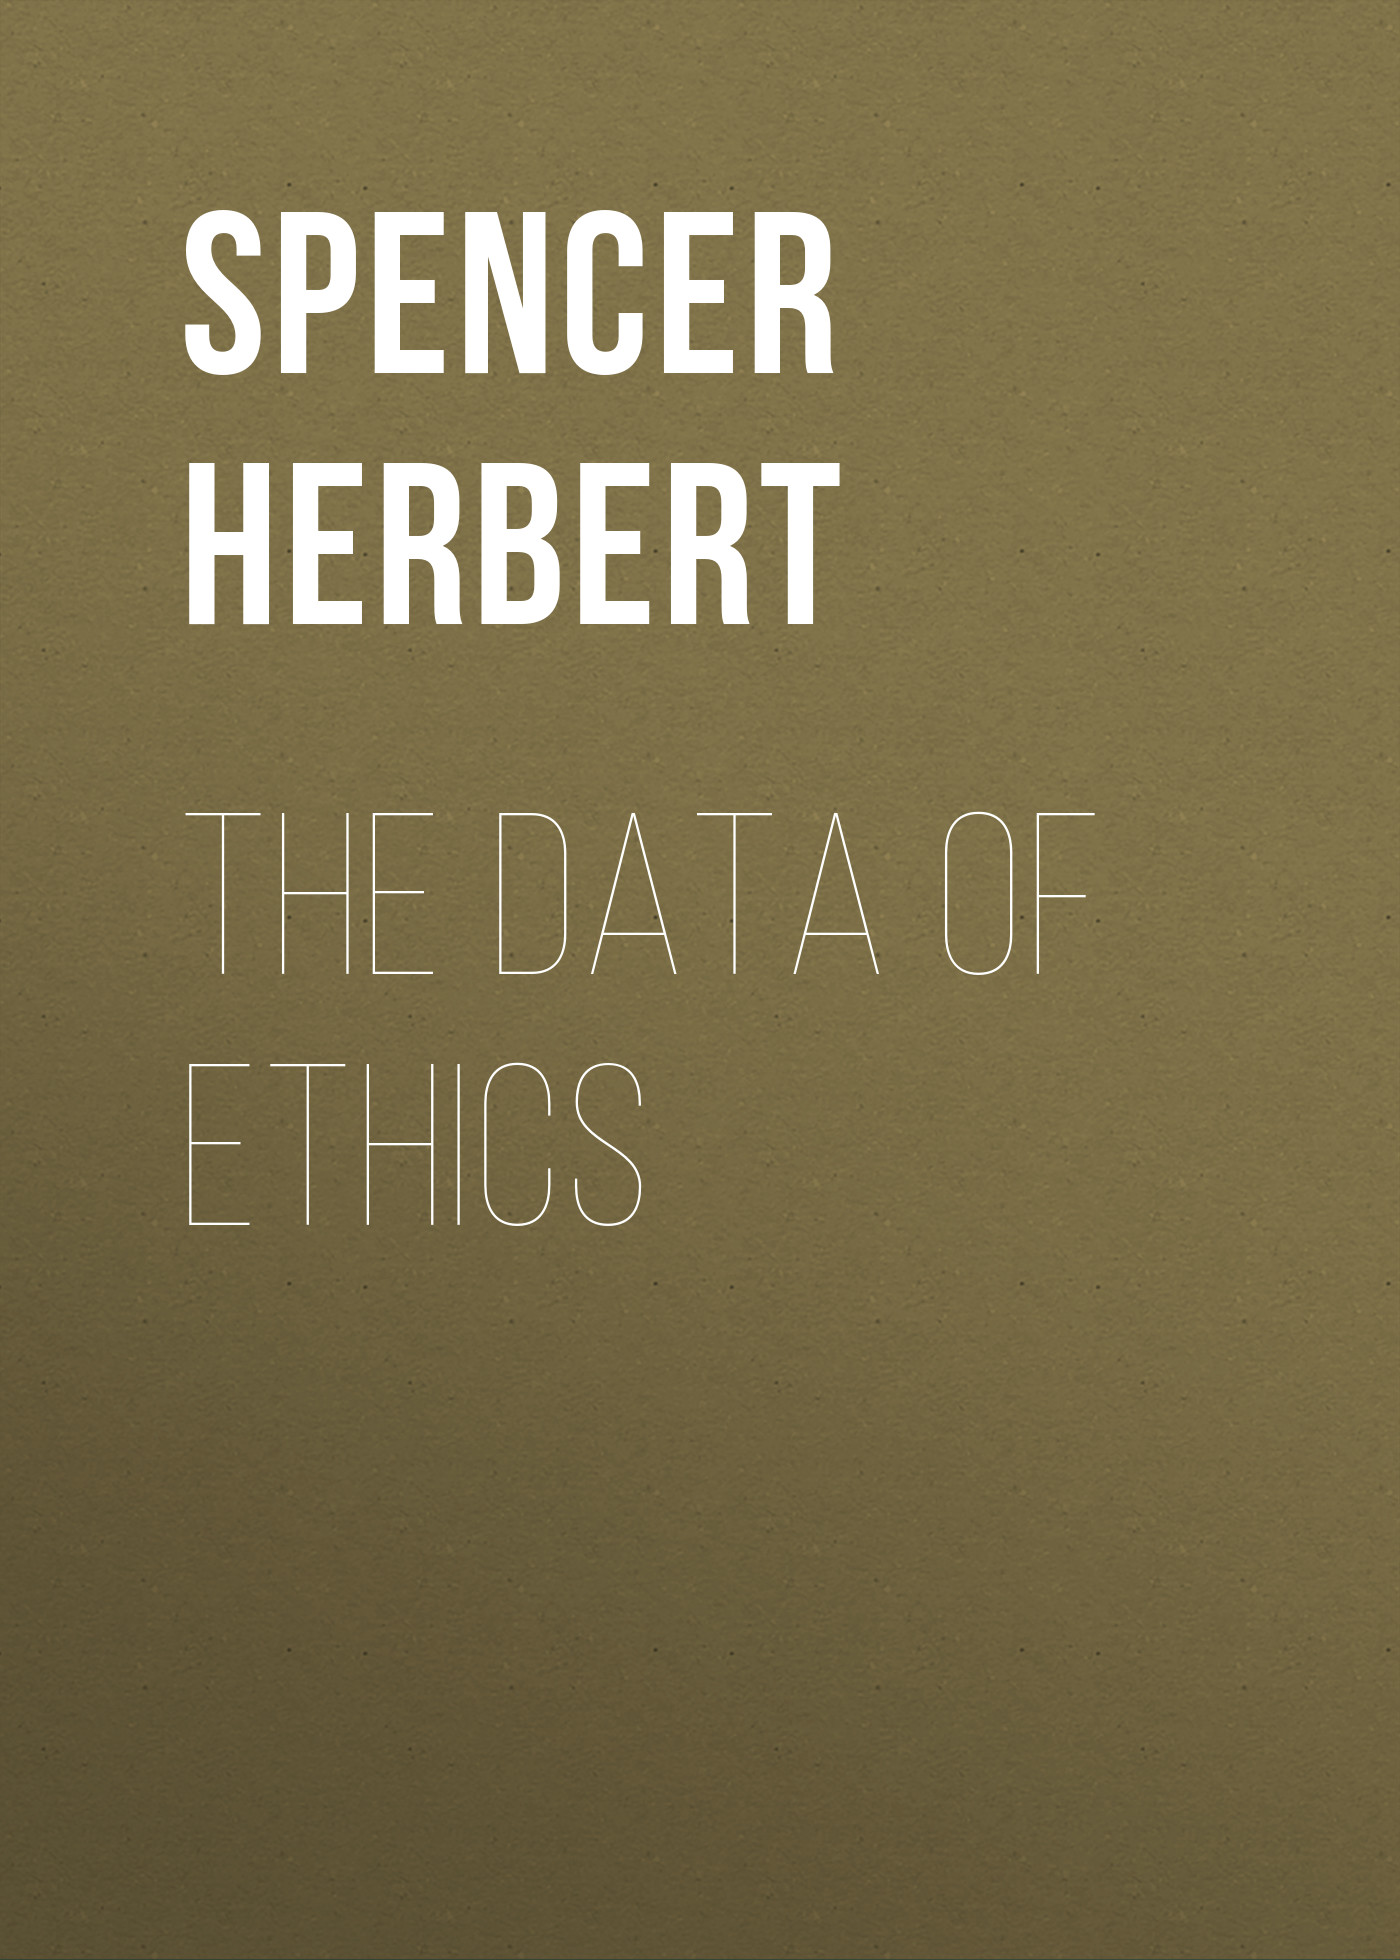 Spencer Herbert The Data of Ethics